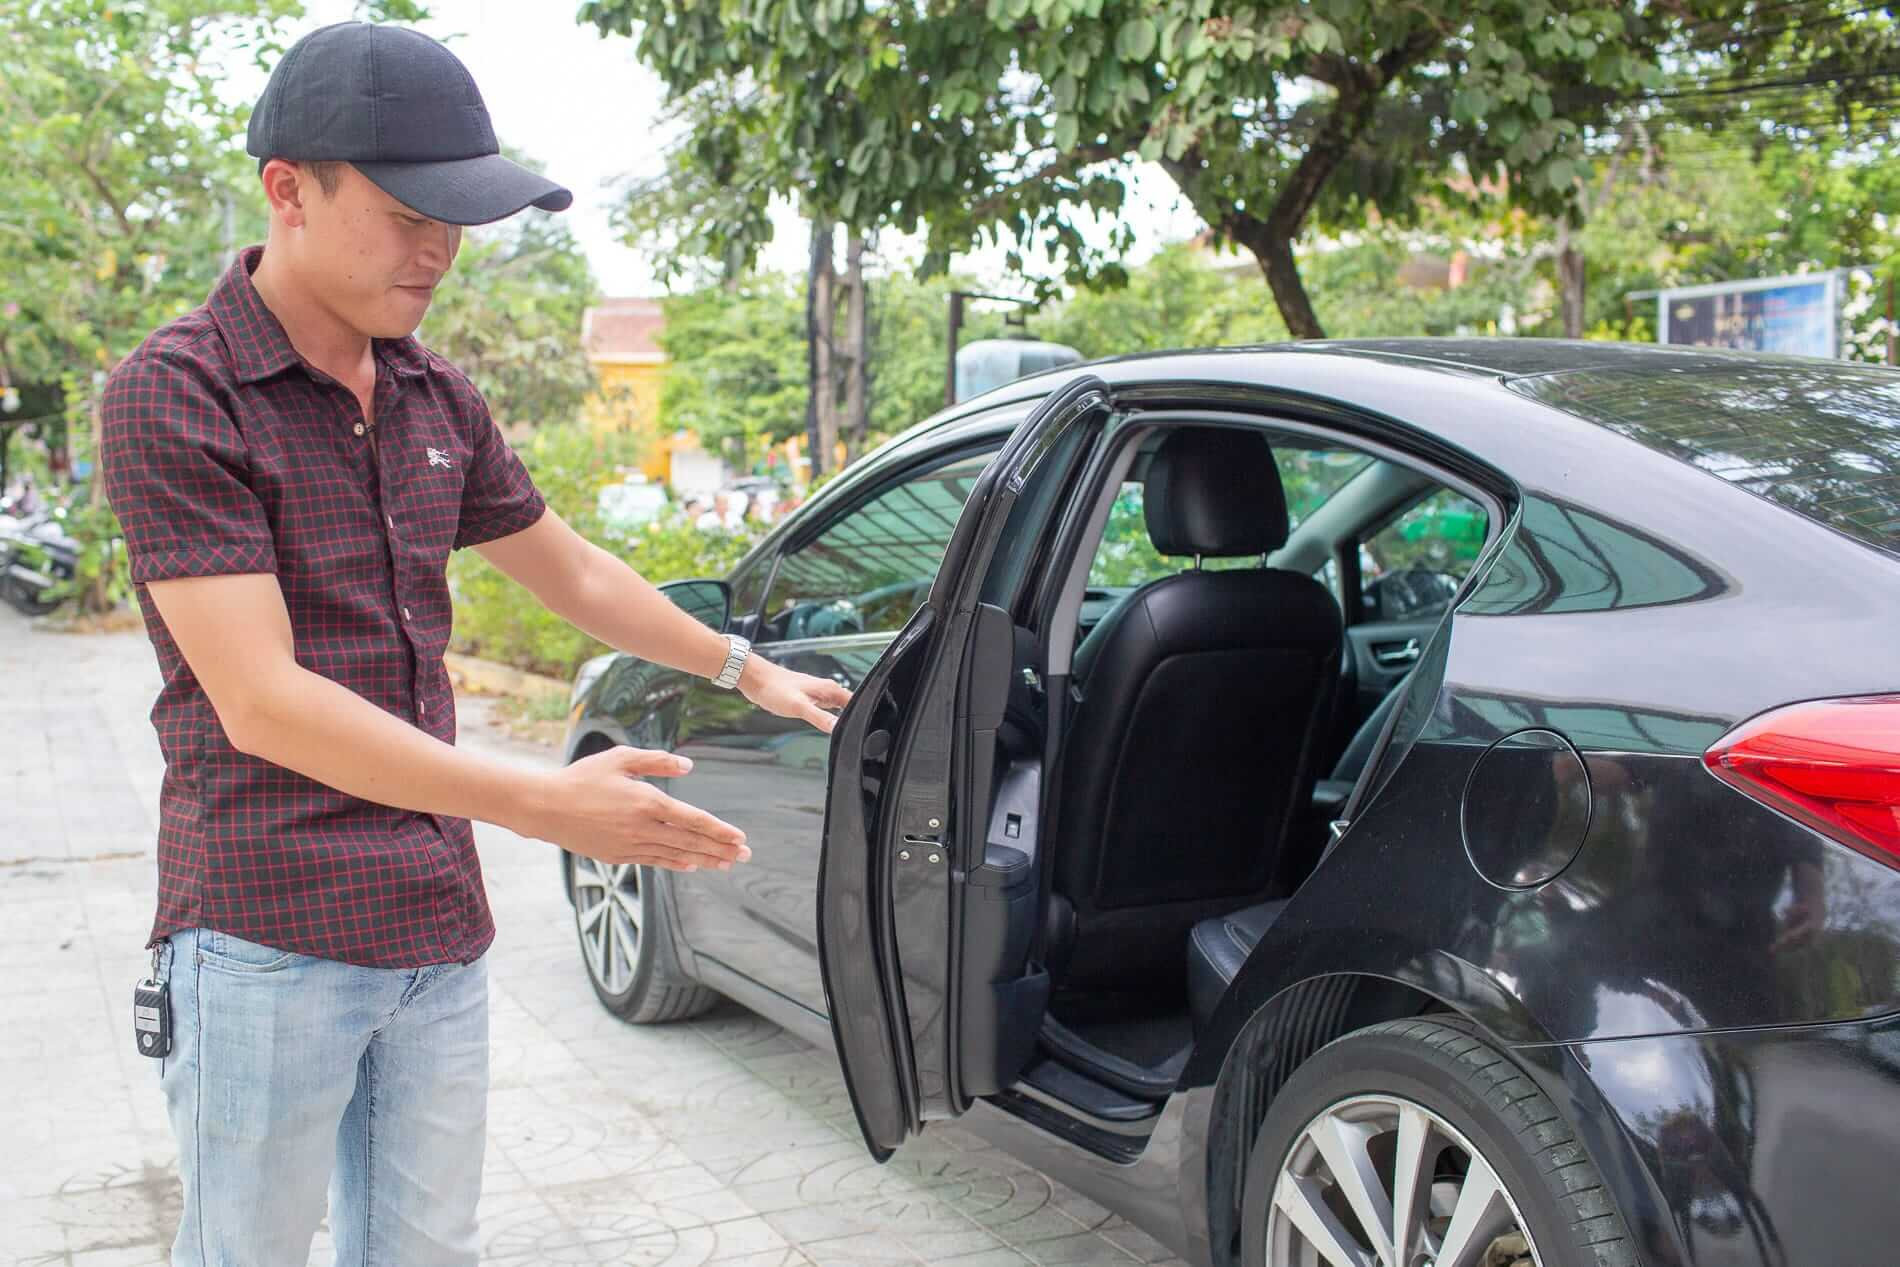 A driver collects his passengers